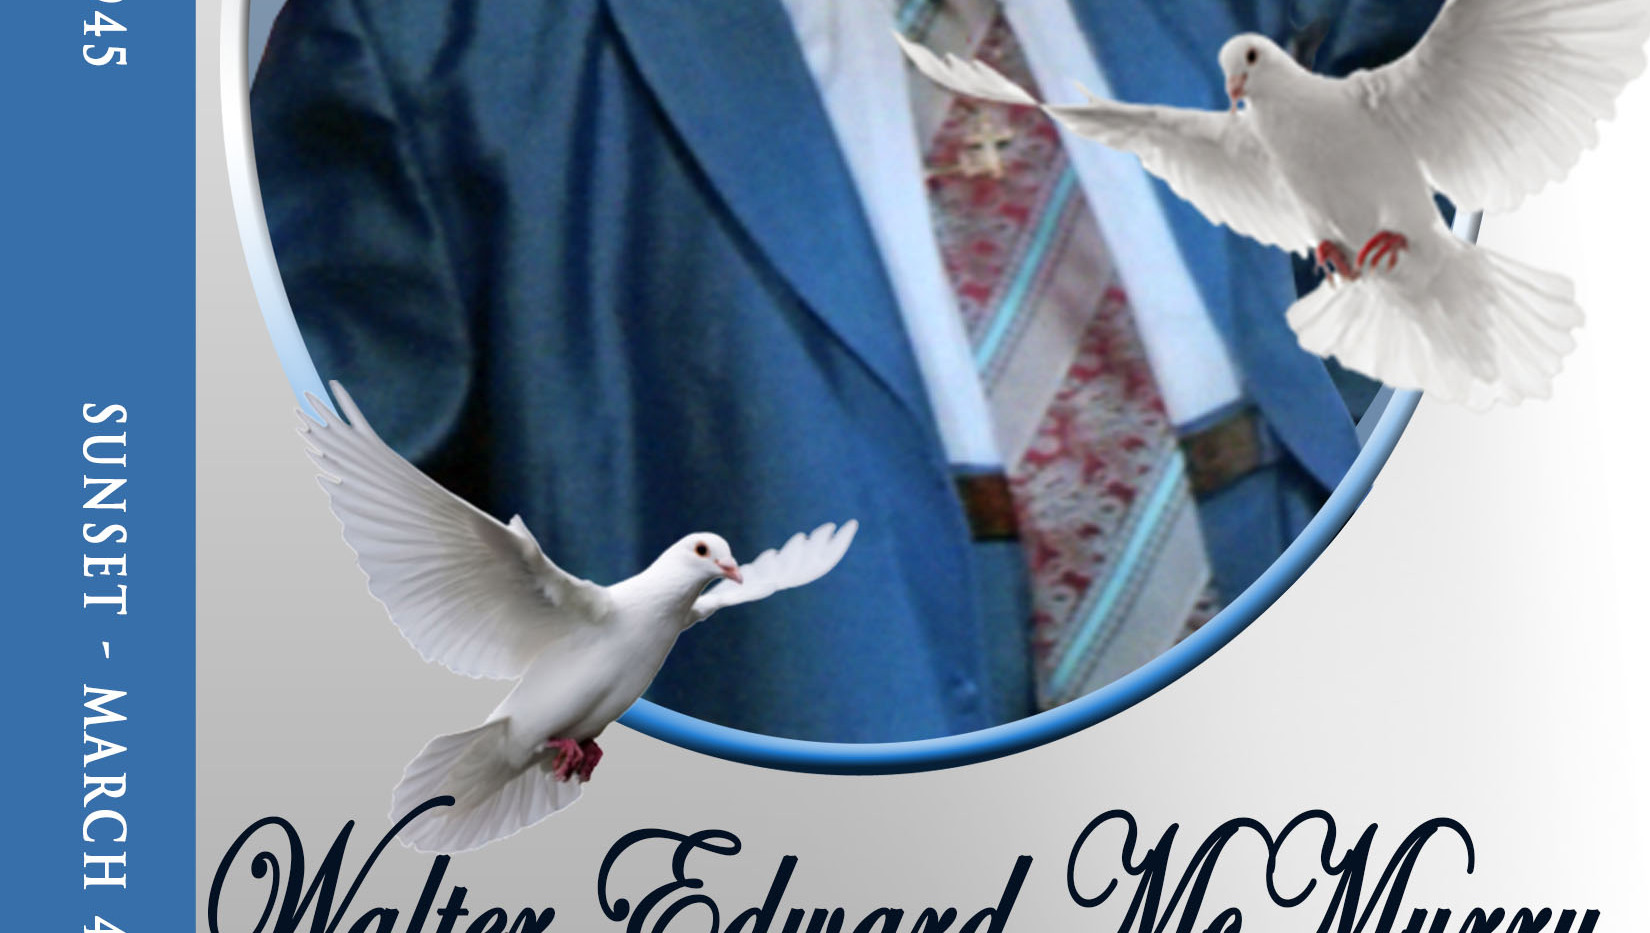 Walter Edward McMurry Obit Cover.jpg